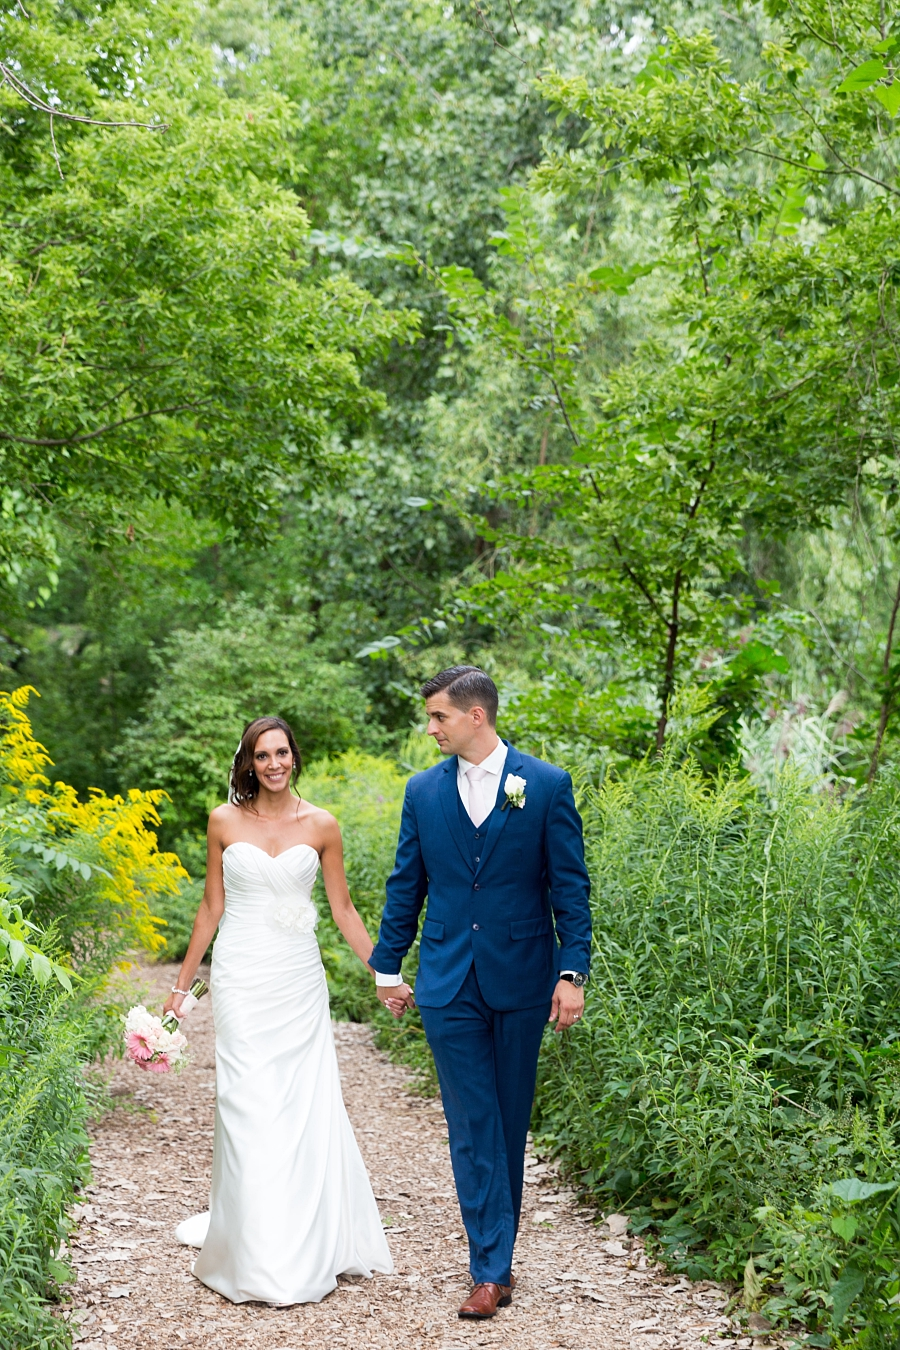 Stacy-Anderson-Photography-Sarnia-Toronto-Ontario-Wedding-Photographer_0028.jpg